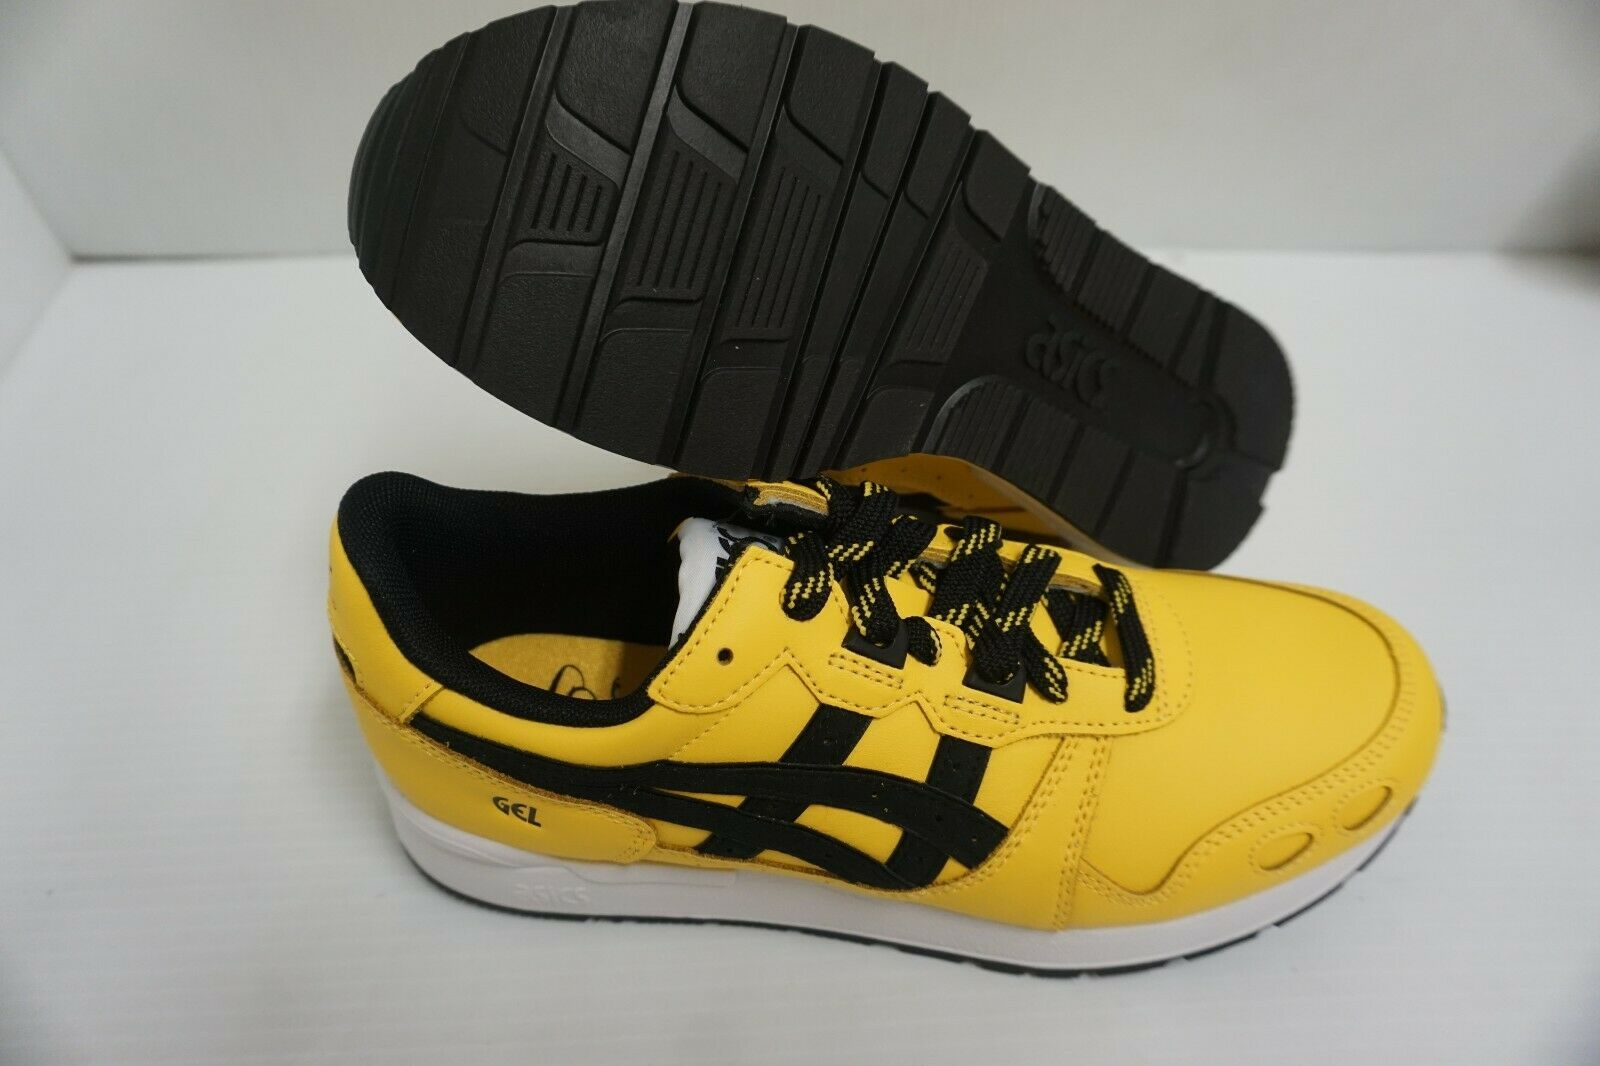 Primary image for Asics men gel lyte tai chi yellow black running shoes size 7.5 us